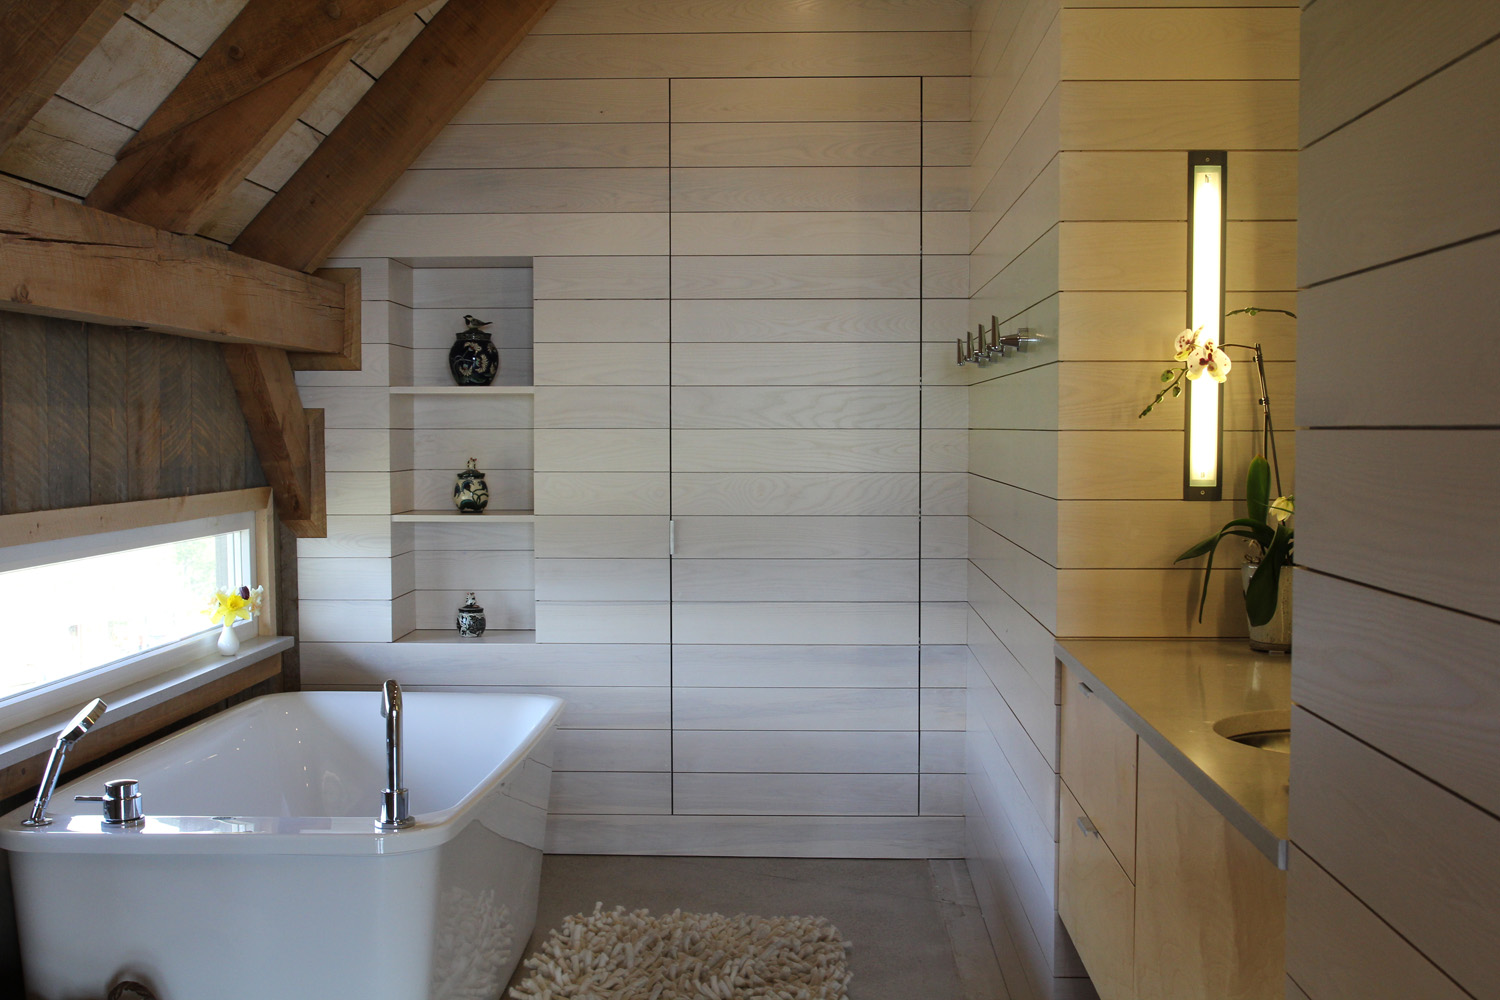 houdinidesign_ARCHITECTS_Ritchie-Gidney_Residence_Sandy-Cove_Digby_Acadian_Timber_Frame_Modern_Renovation_Modern_Bathroom.jpg